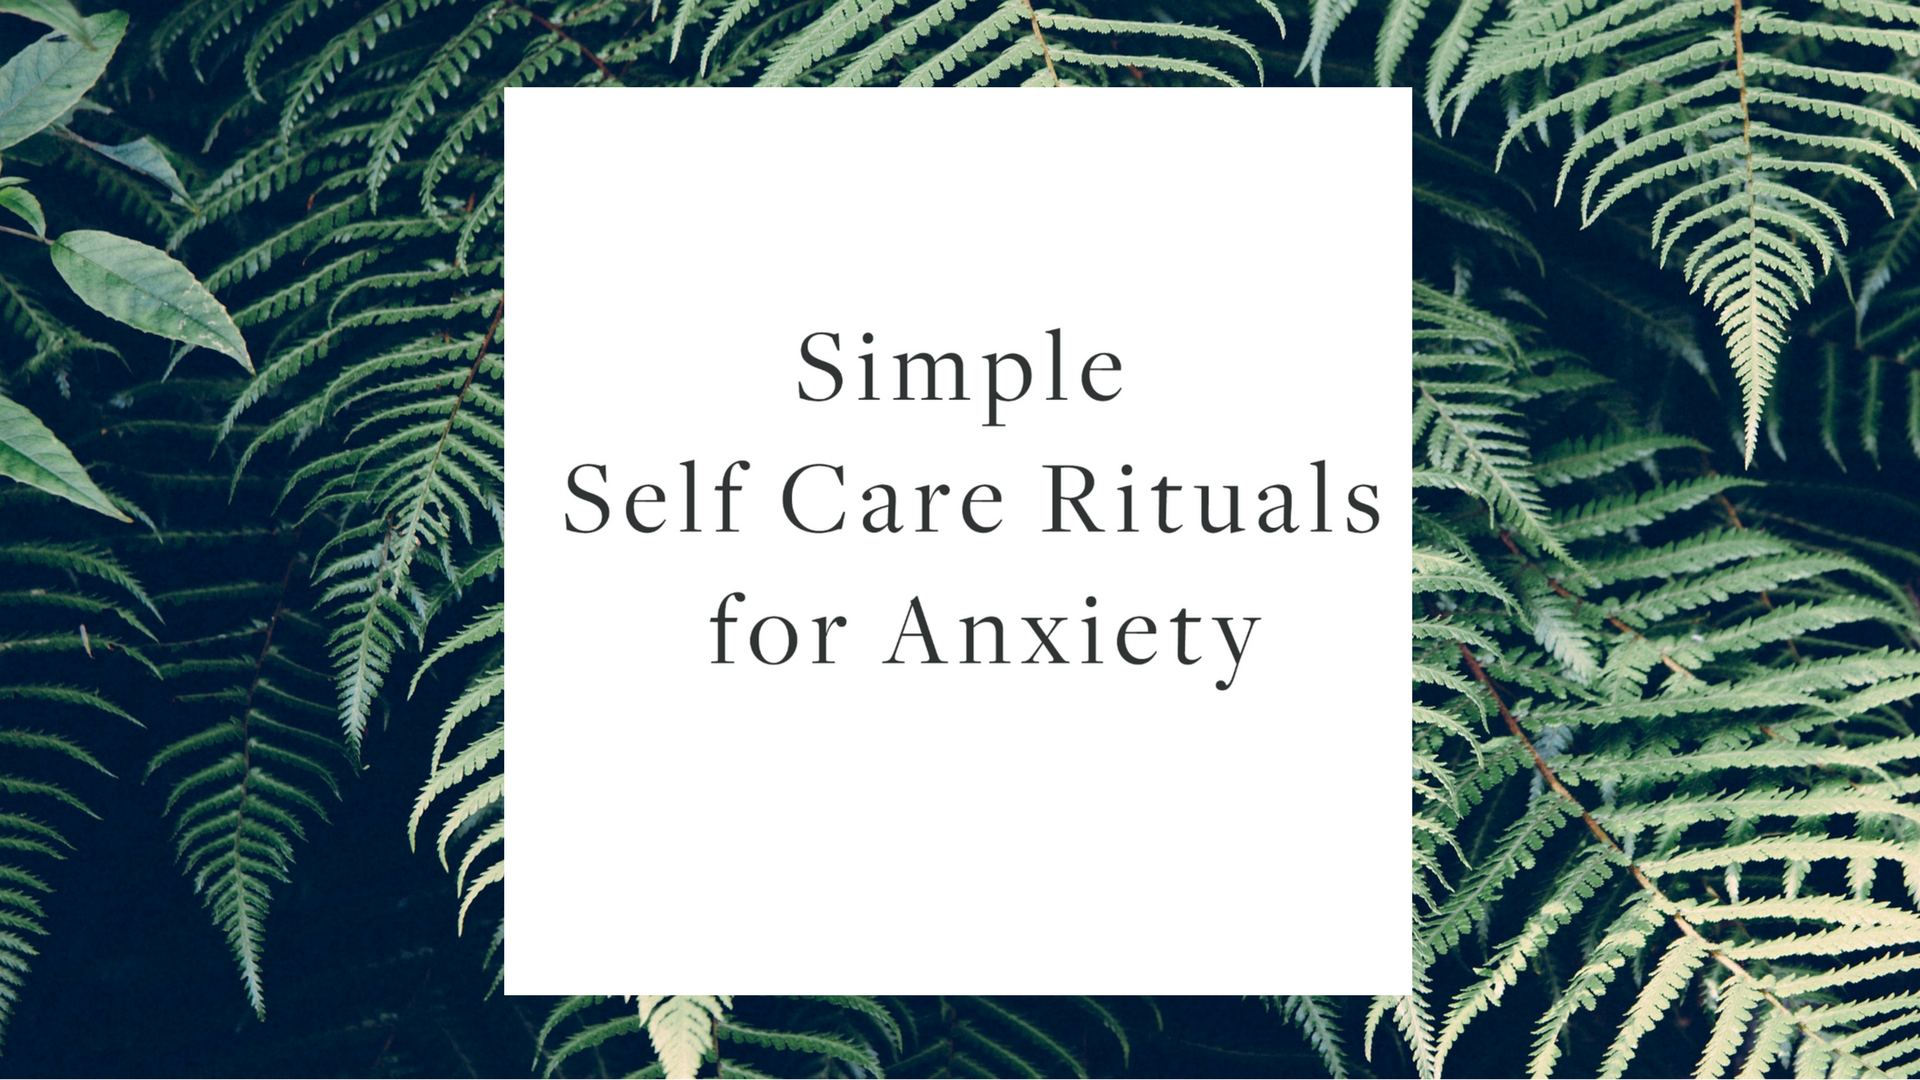 Simple Self Care Rituals for Anxiety